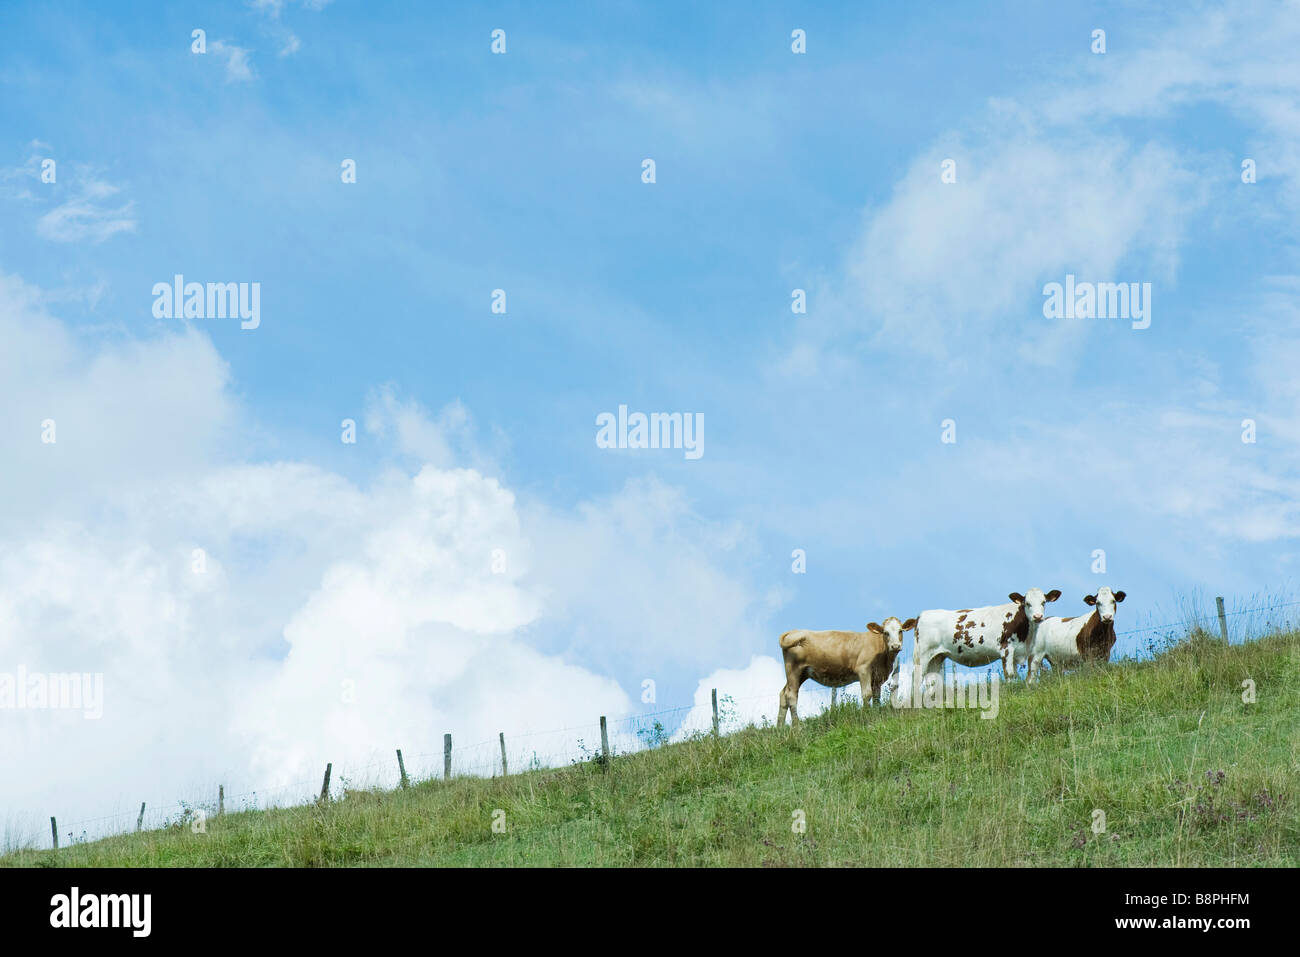 Cows on hill turning to look at camera - Stock Image